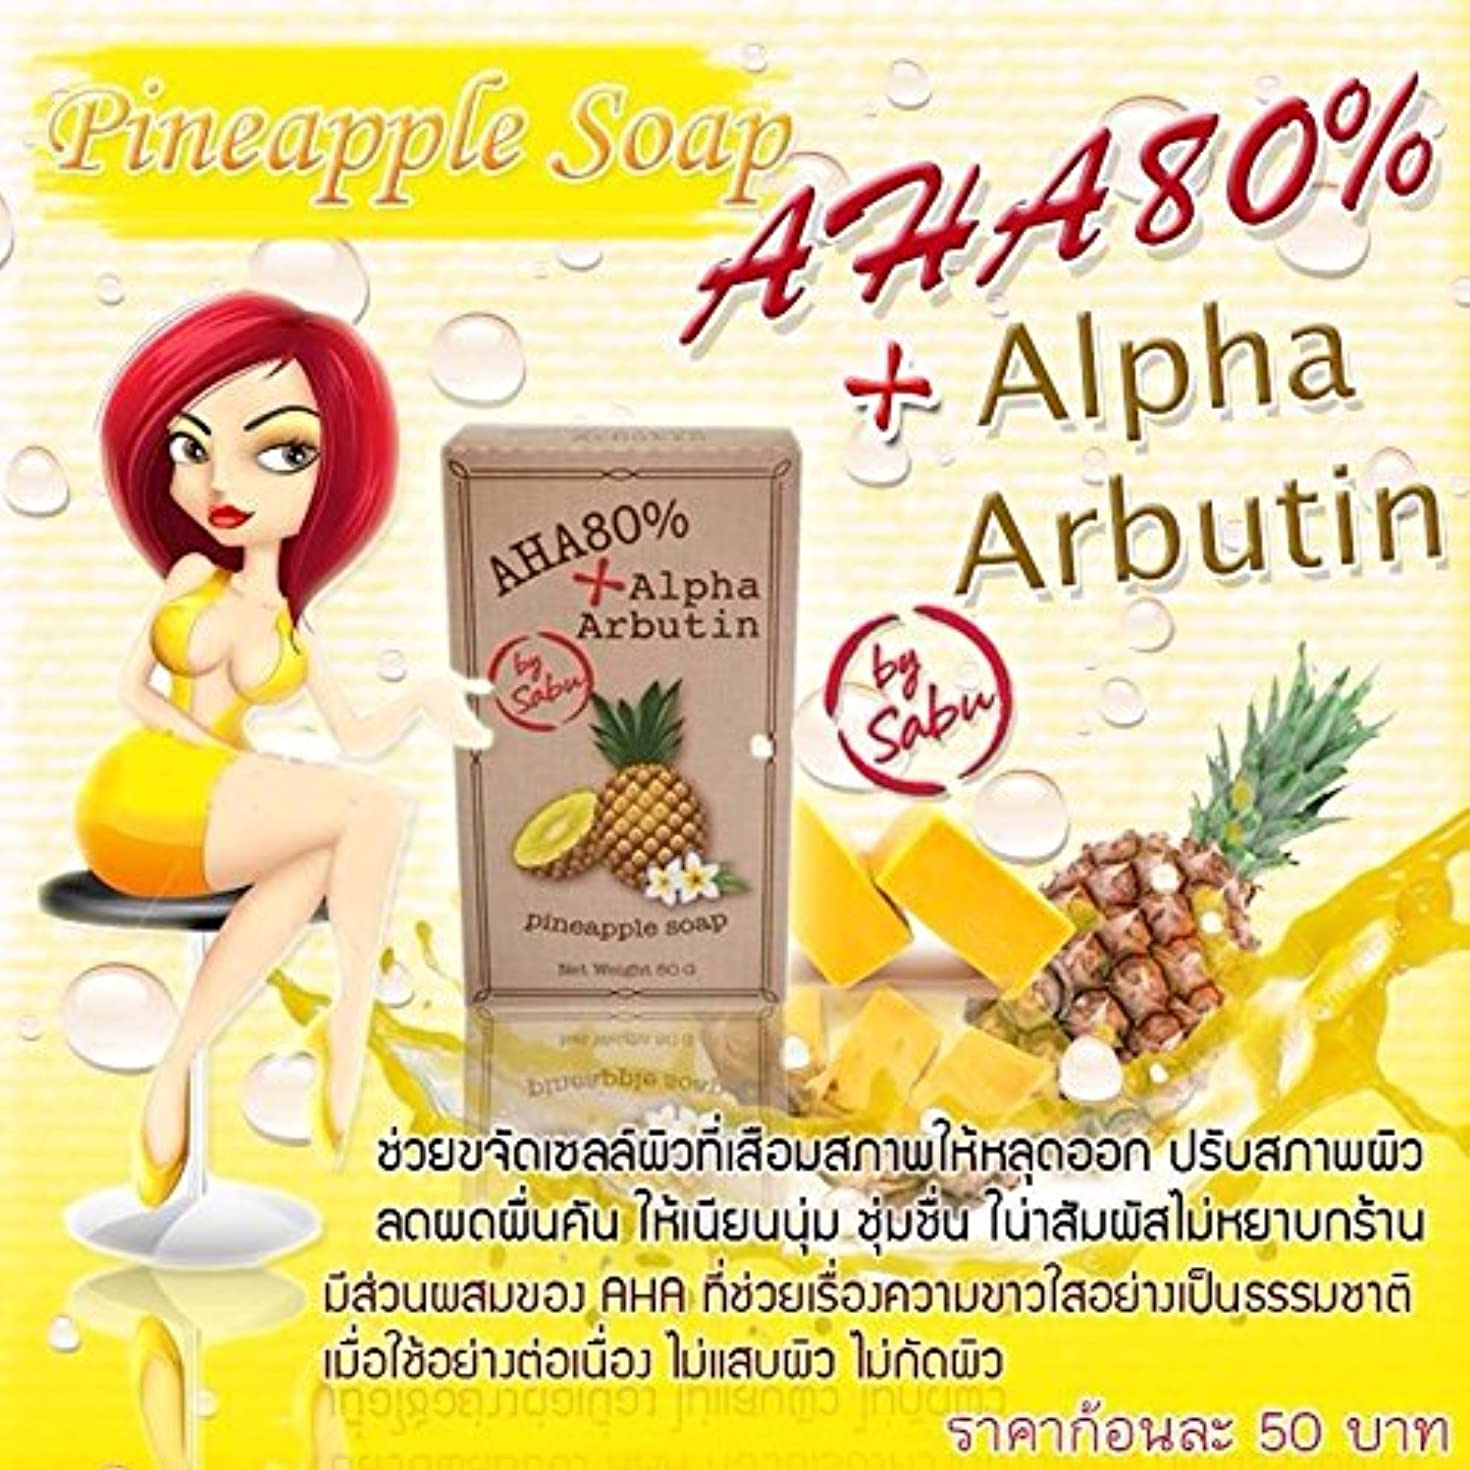 無駄に合計スパイラル1 X Natural Herbal Whitening Soap.Alpha-Arbutin Pineapple AHA 80%. The skin whitening process is rapid. 80 g. Free shipping